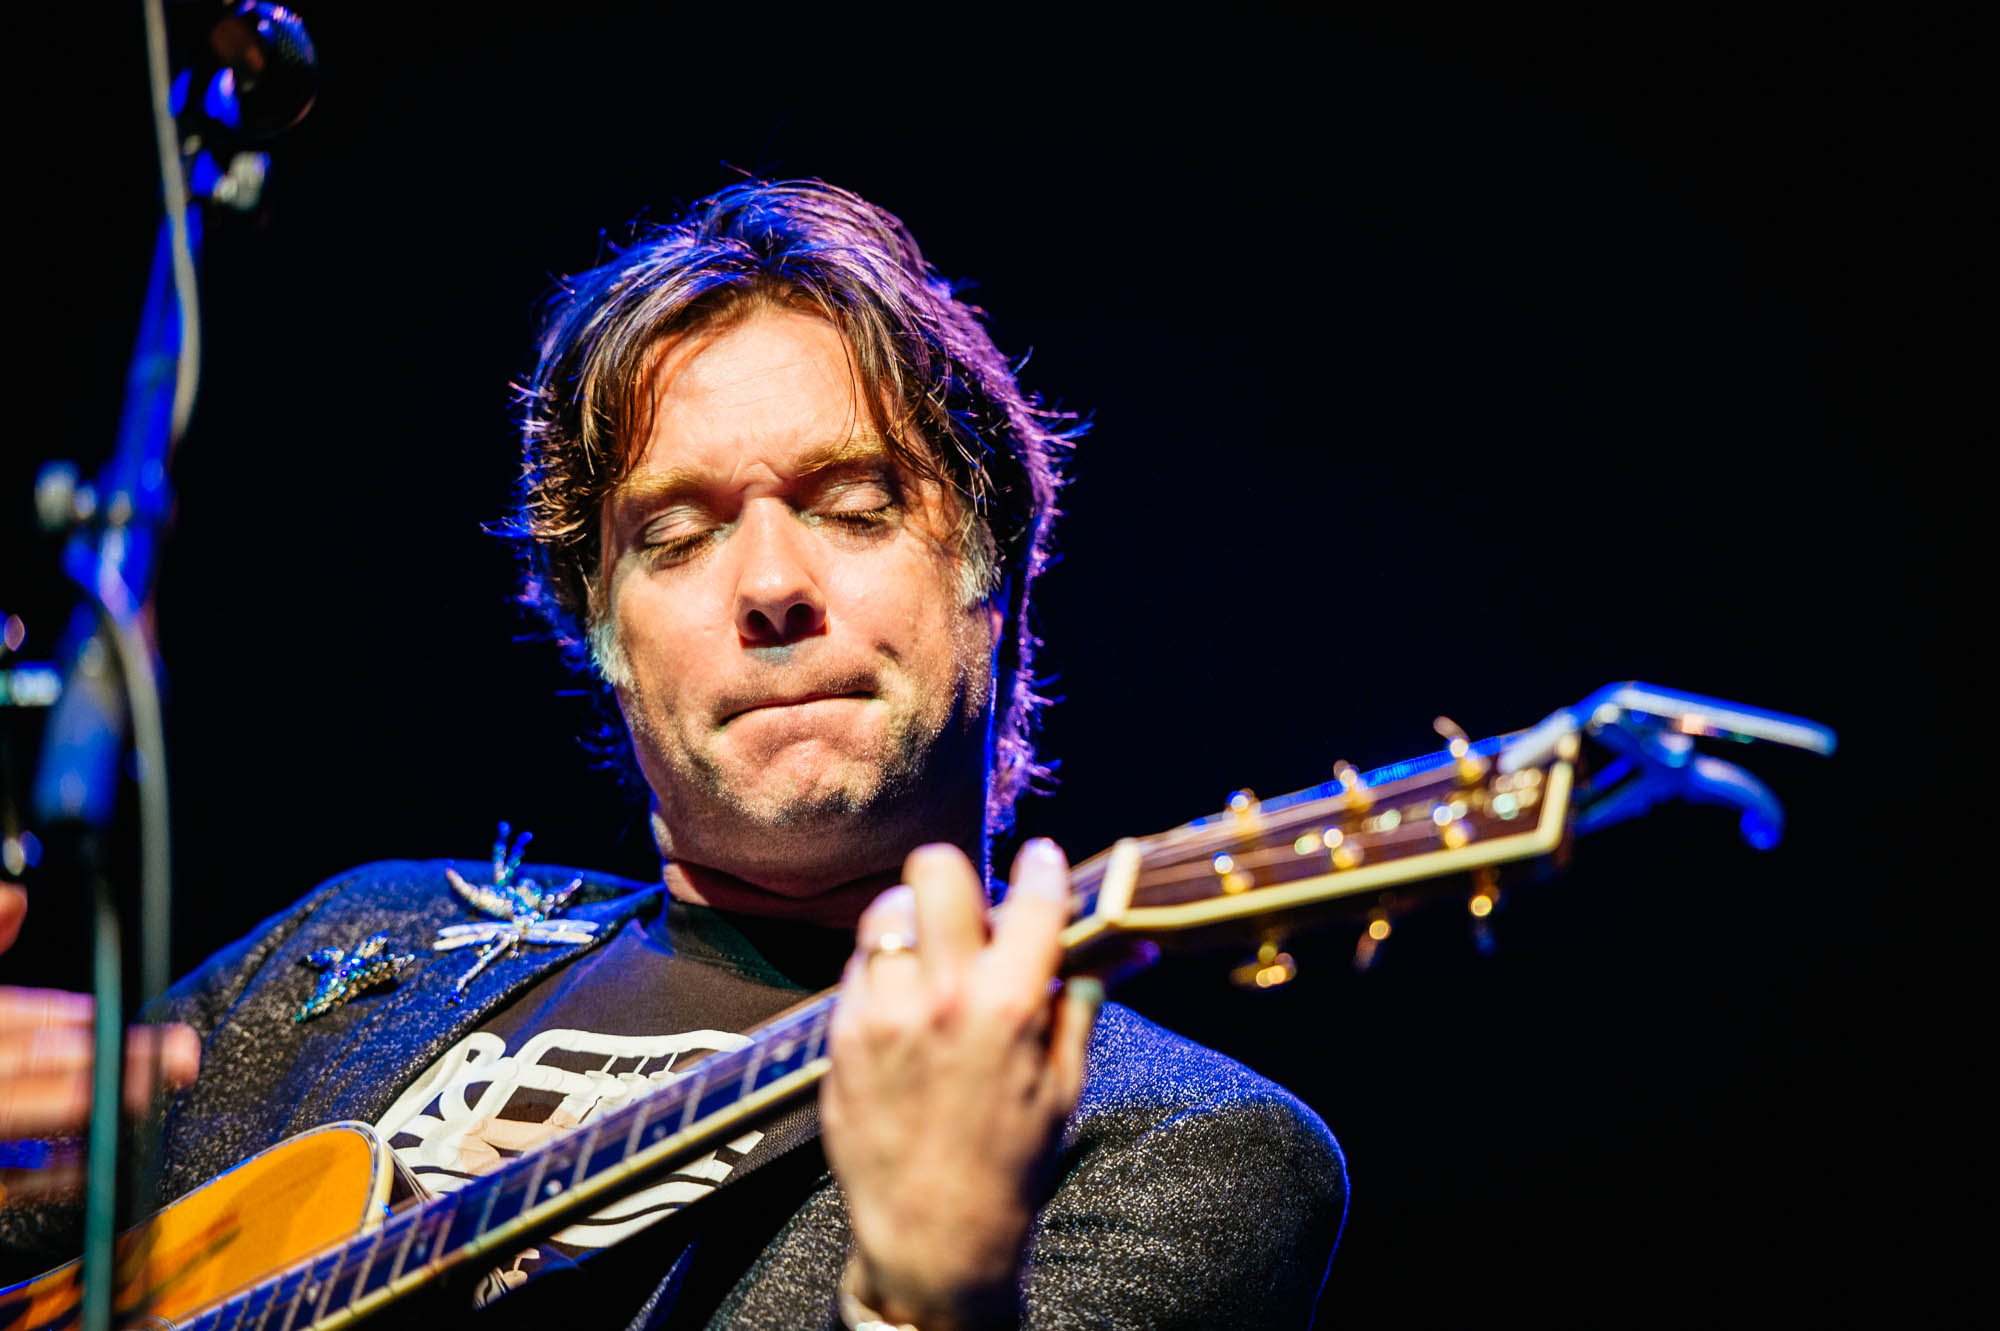 A photo of Rufus Wainwright at the Festival of Voice onstage playing a guitar